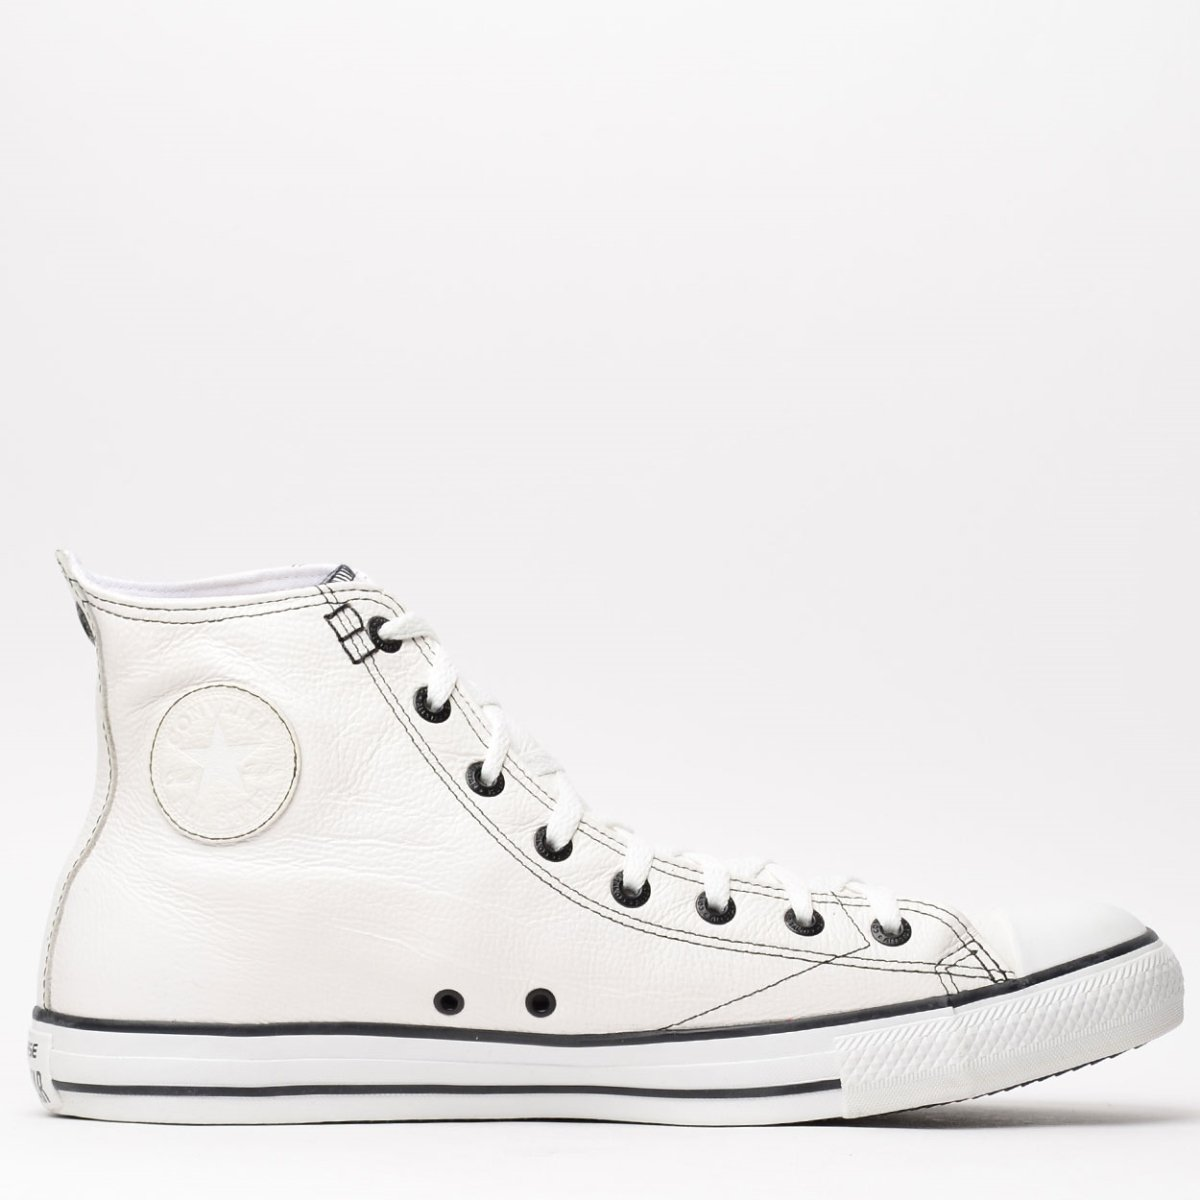 4479e6ea754 Tênis Converse All Star CT As European Hi - Compre Agora